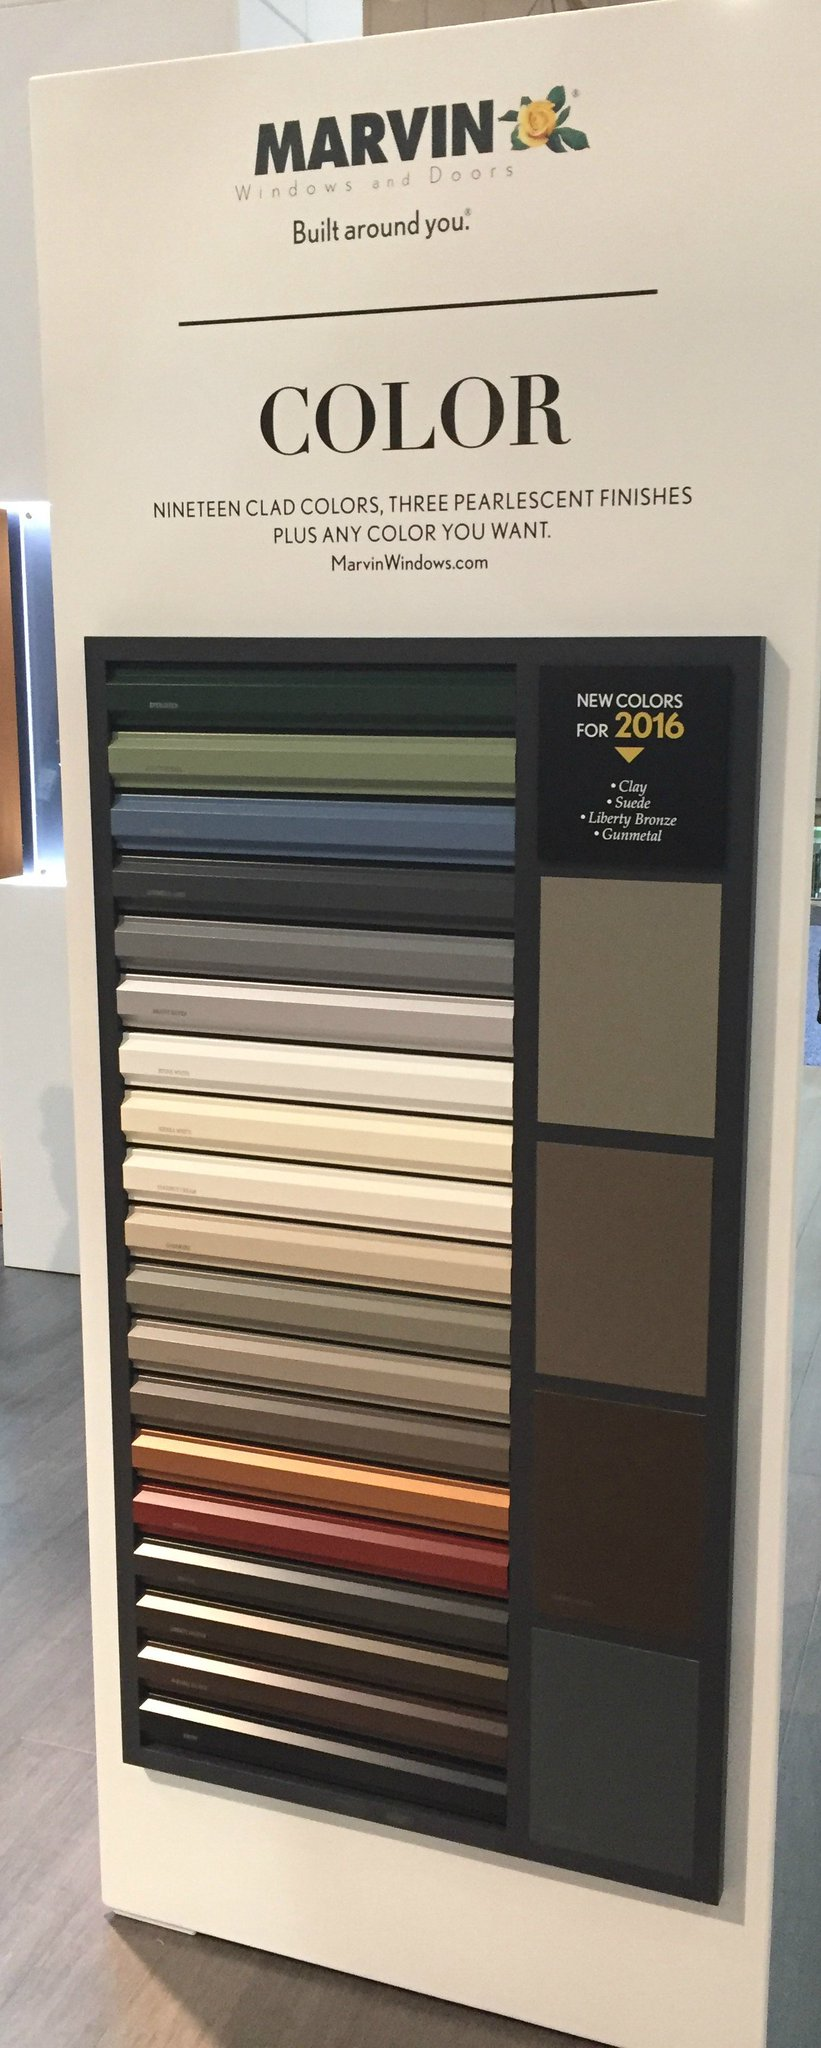 Marvin Windows On Twitter Liberty Bronze Suede Clay New In 2016 Marvinwindows Has 19 Clad Colors Inspired By The Natural World